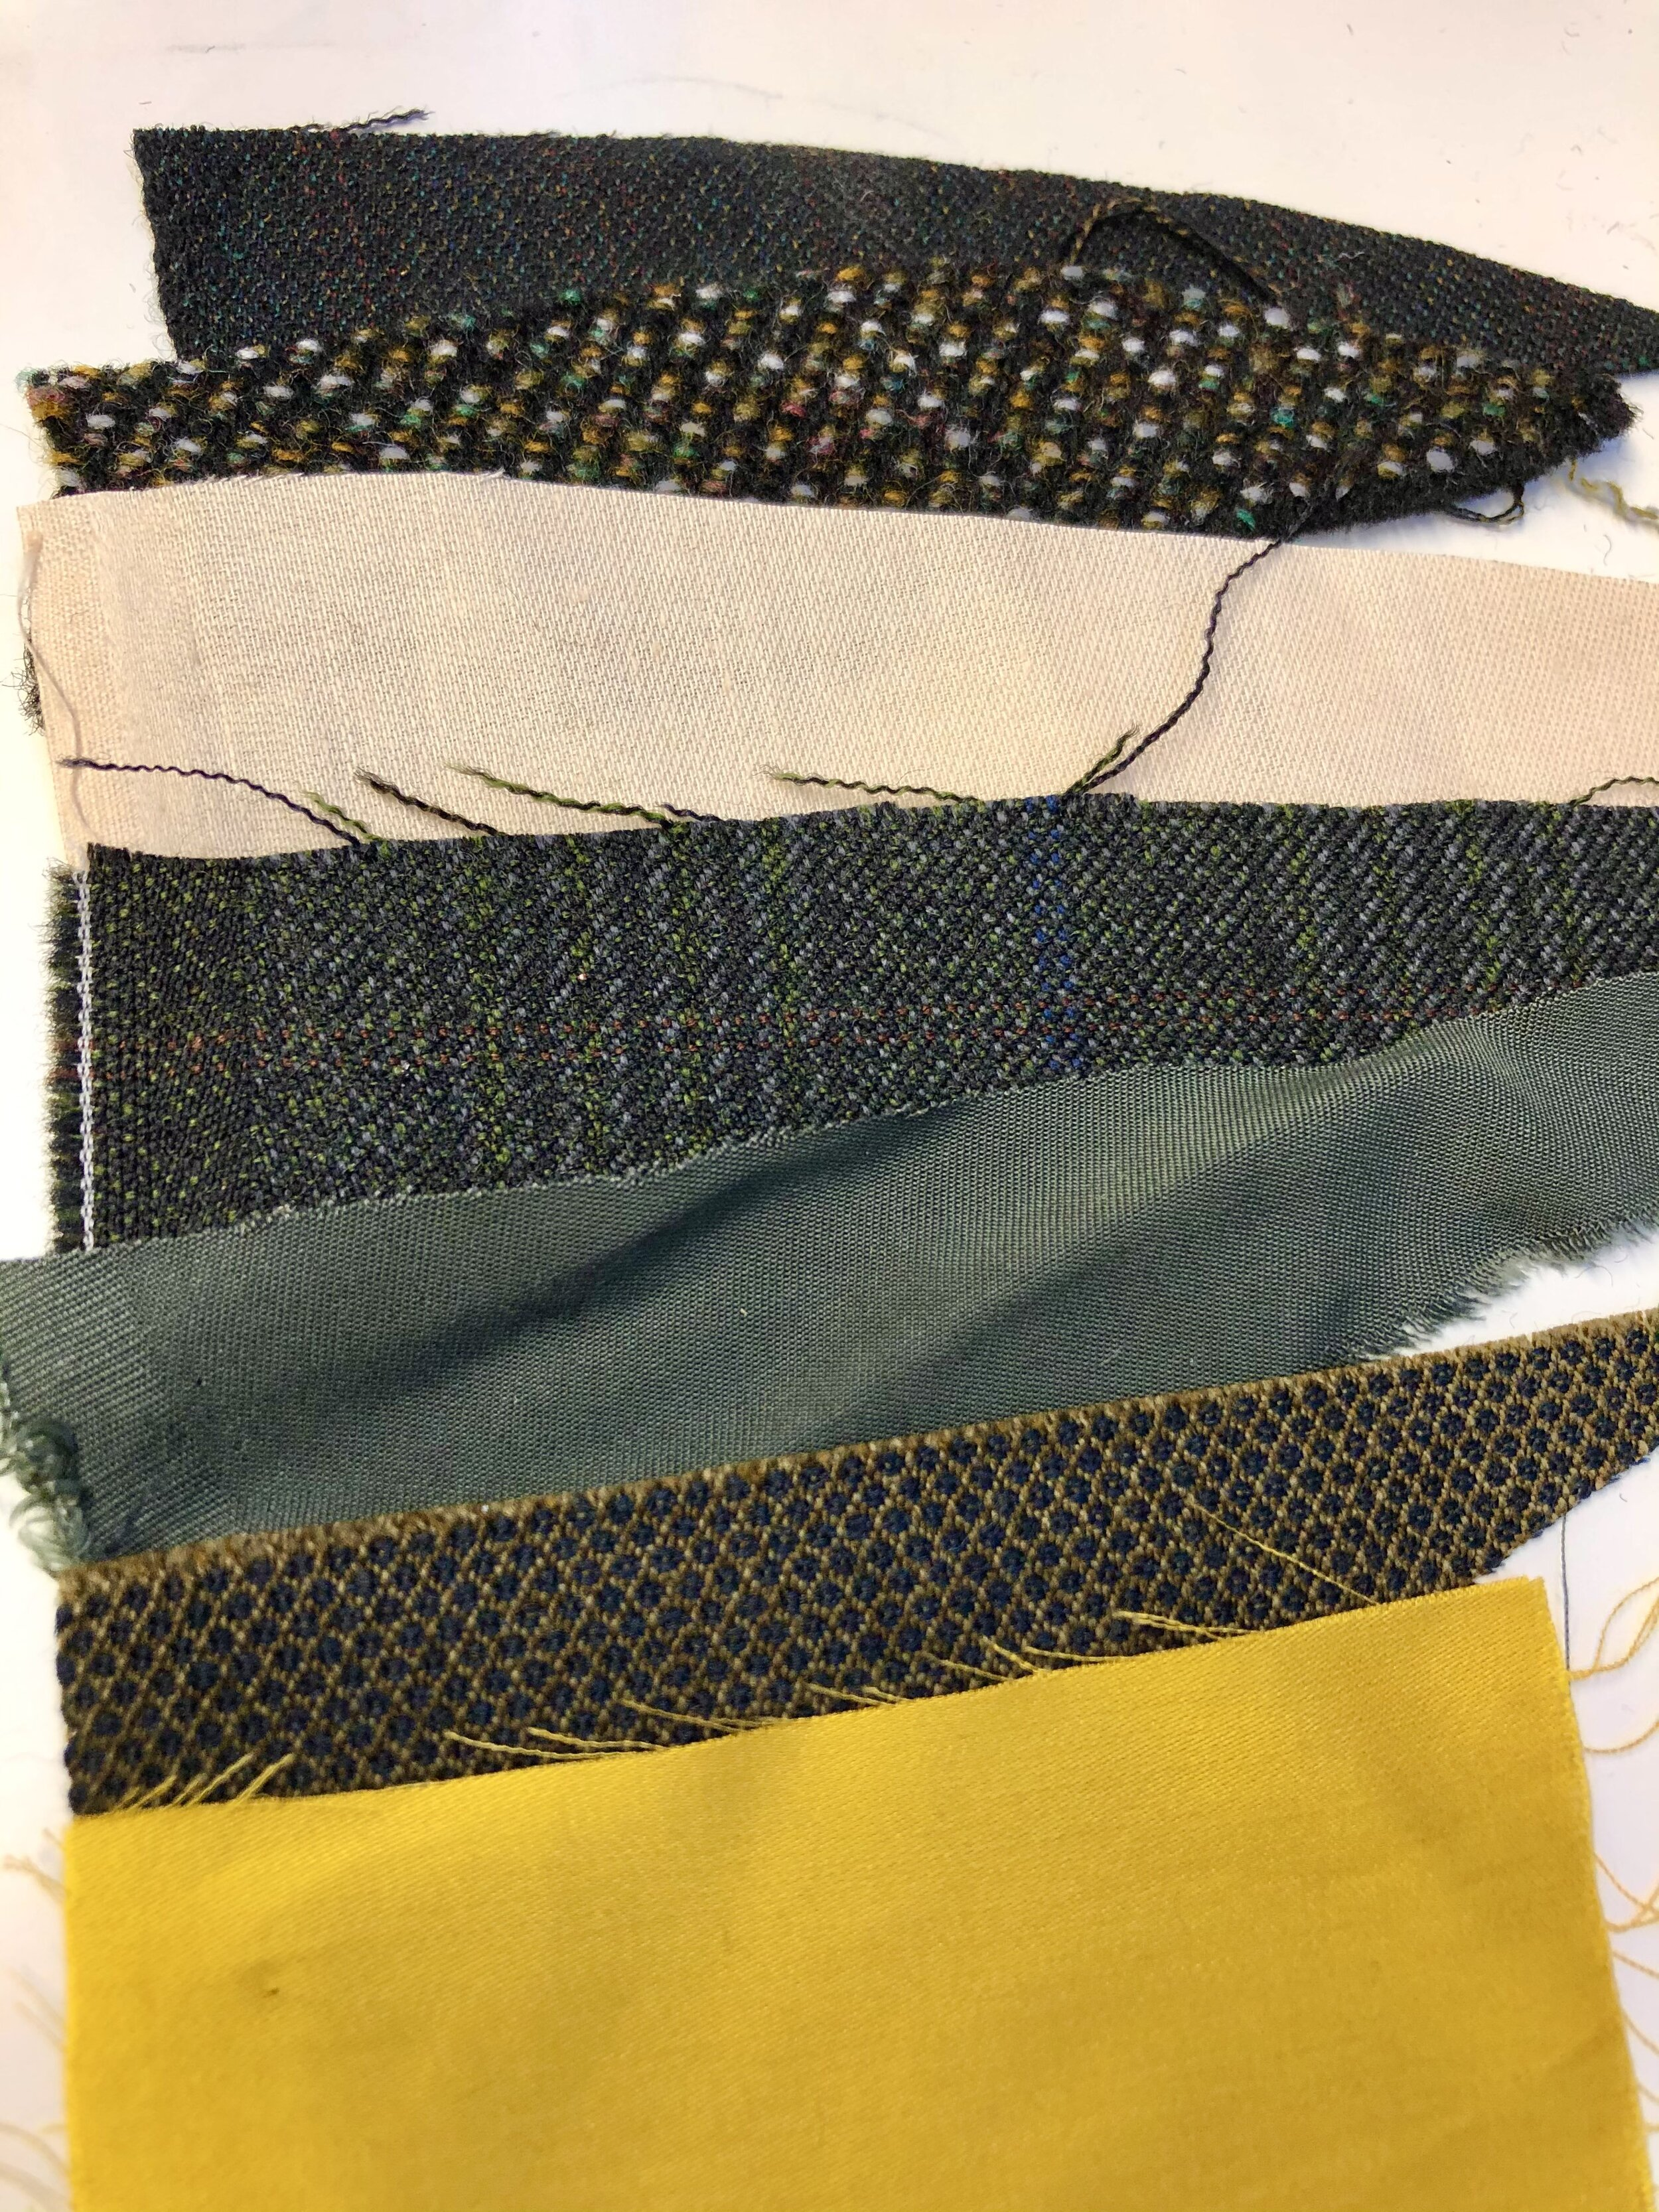 A sneak peak of some of the sustainably sourced fabrics to be used for Rose's Wardrobe favourites - Rosie, Lillias & Patricia.